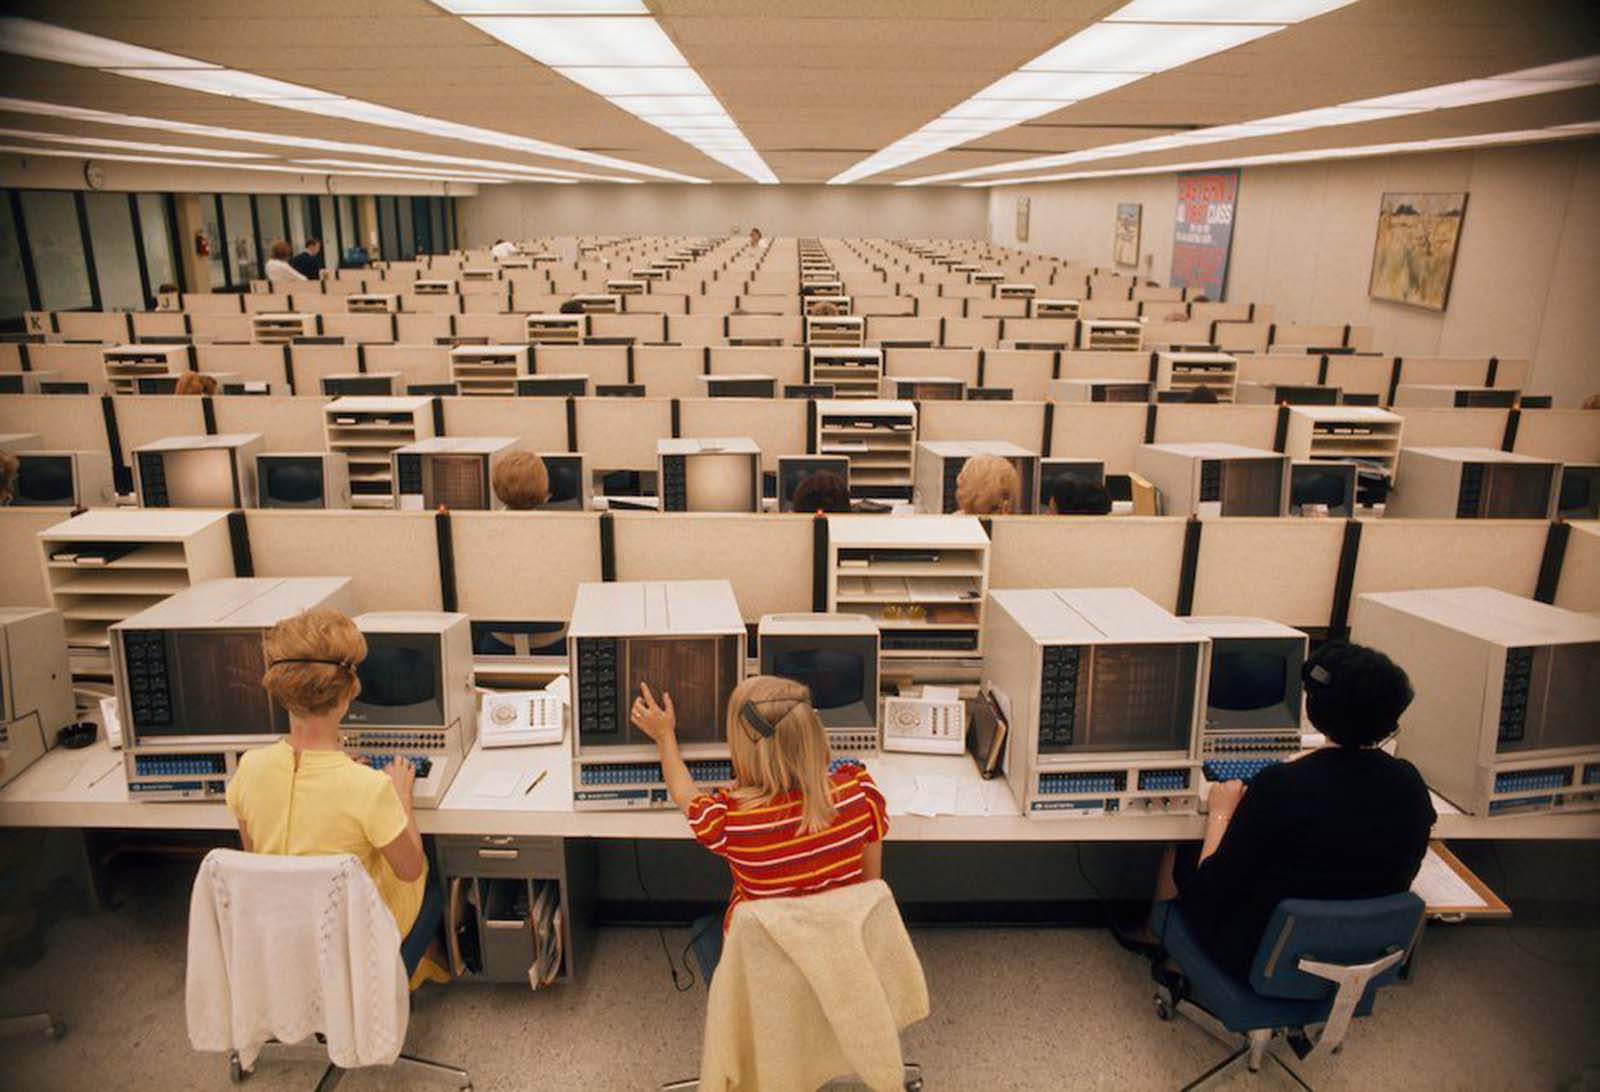 Women operators man computers at Eastern Airlines' reservations center in Miami, Florida. The woman in the centre-front wears a brightly striped top and very naturally styled hair, held loosely in a clip. The woman to the left wears a yellow cotton top and shoes. Cardigans are loosely flung over the backs of their chairs. 1970.